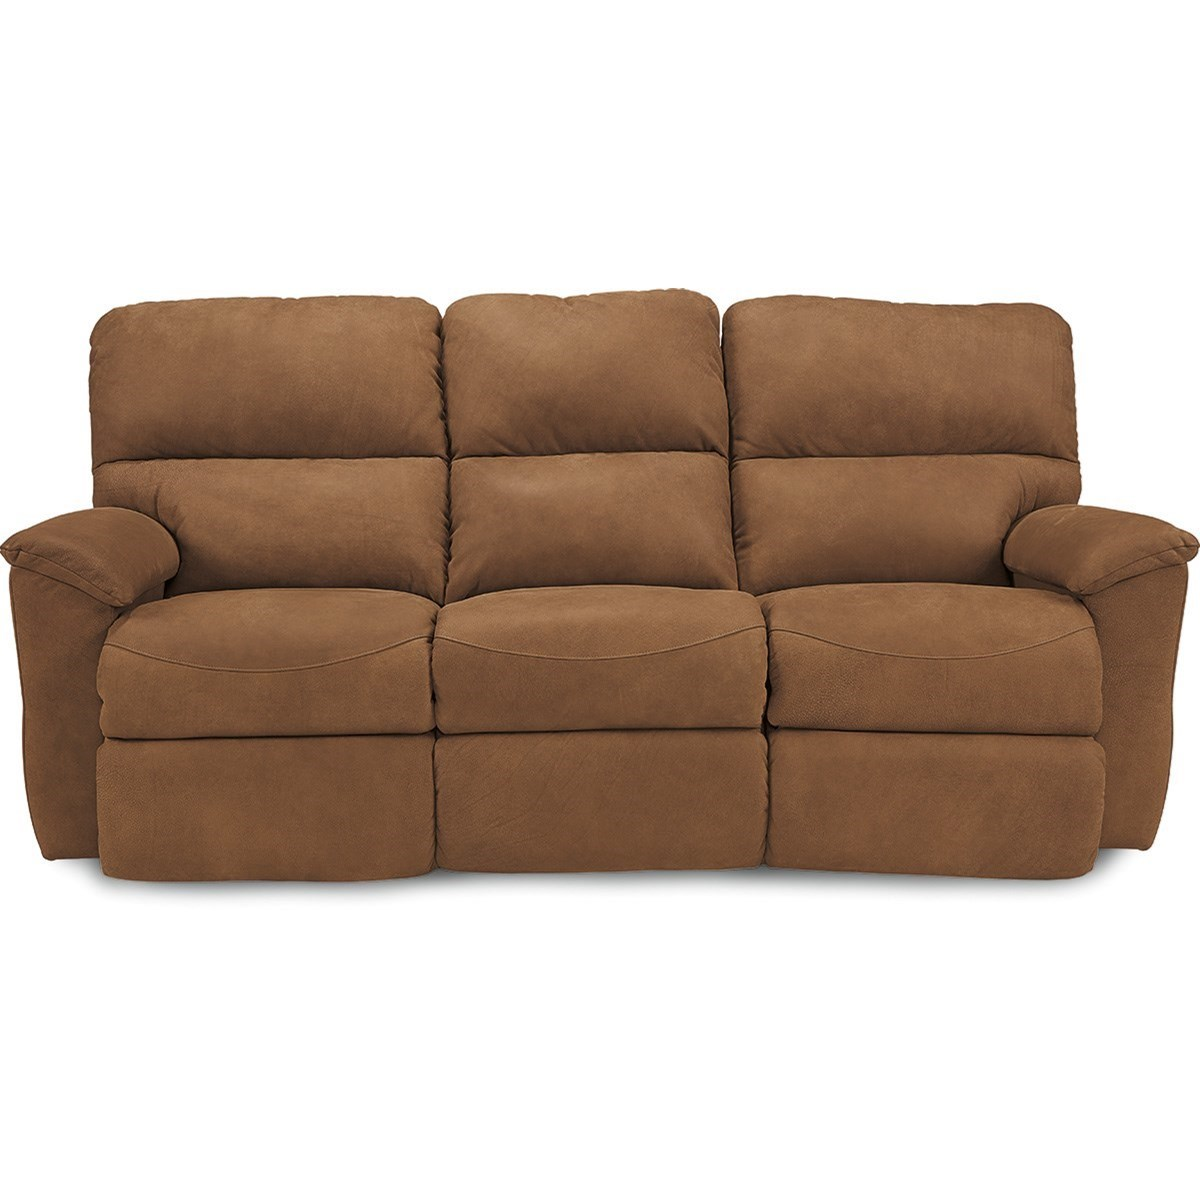 Brooks Power Reclining Sofa w/ Headrests by La-Z-Boy at Lindy's Furniture Company